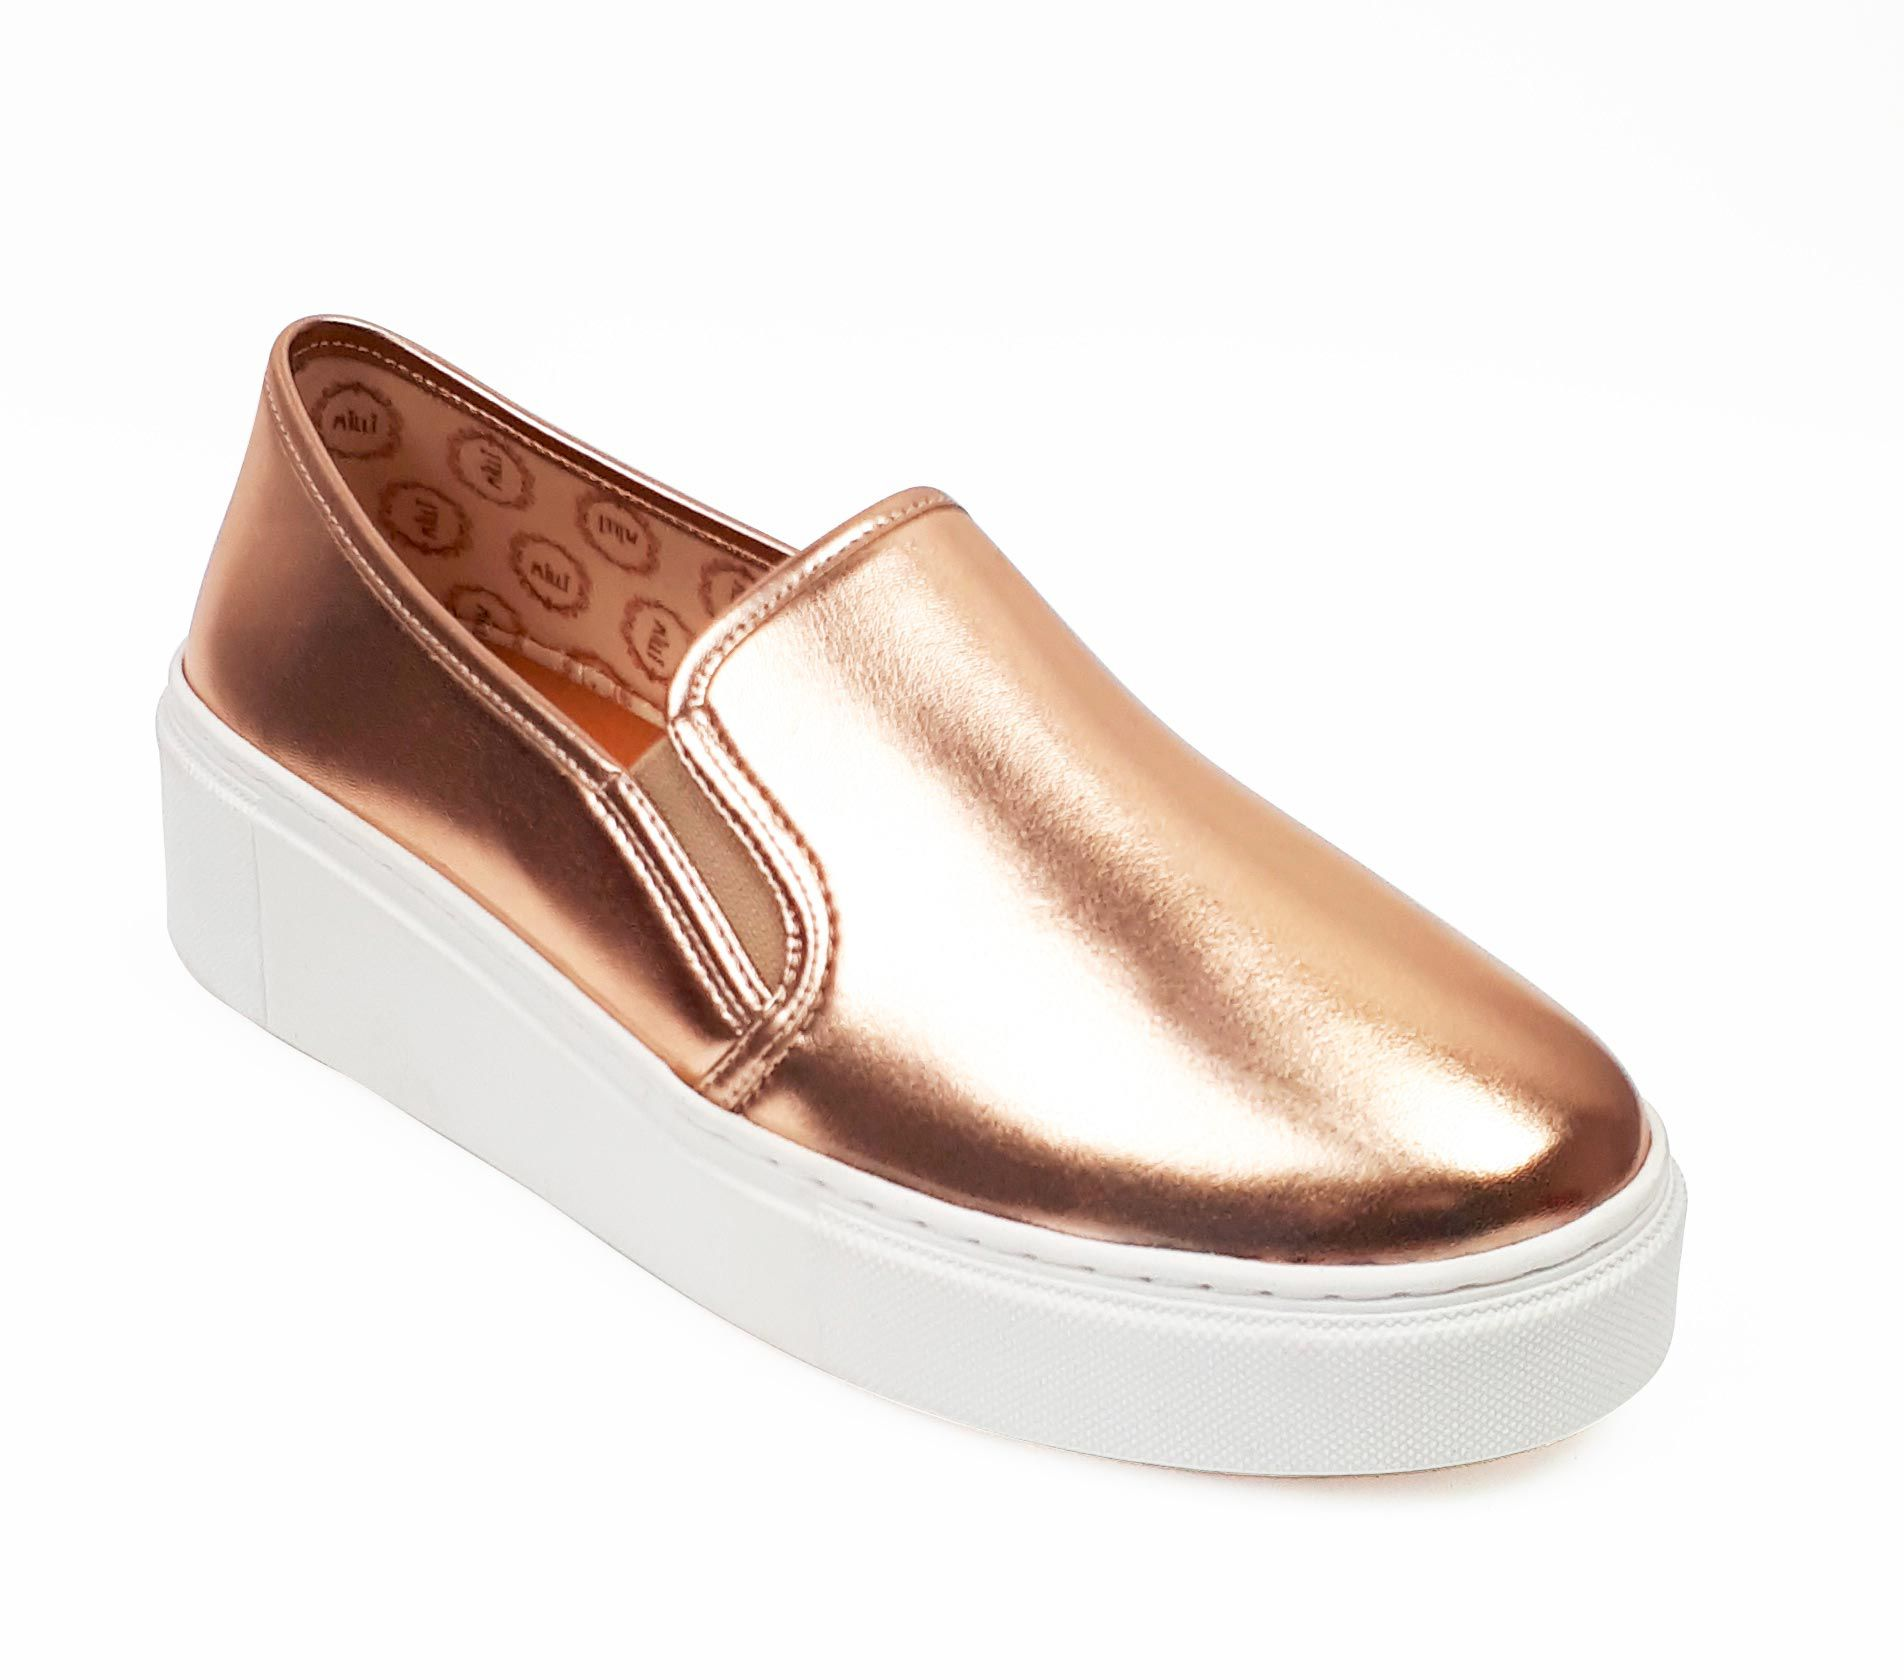 Tênis slip on flatform metalizado rose